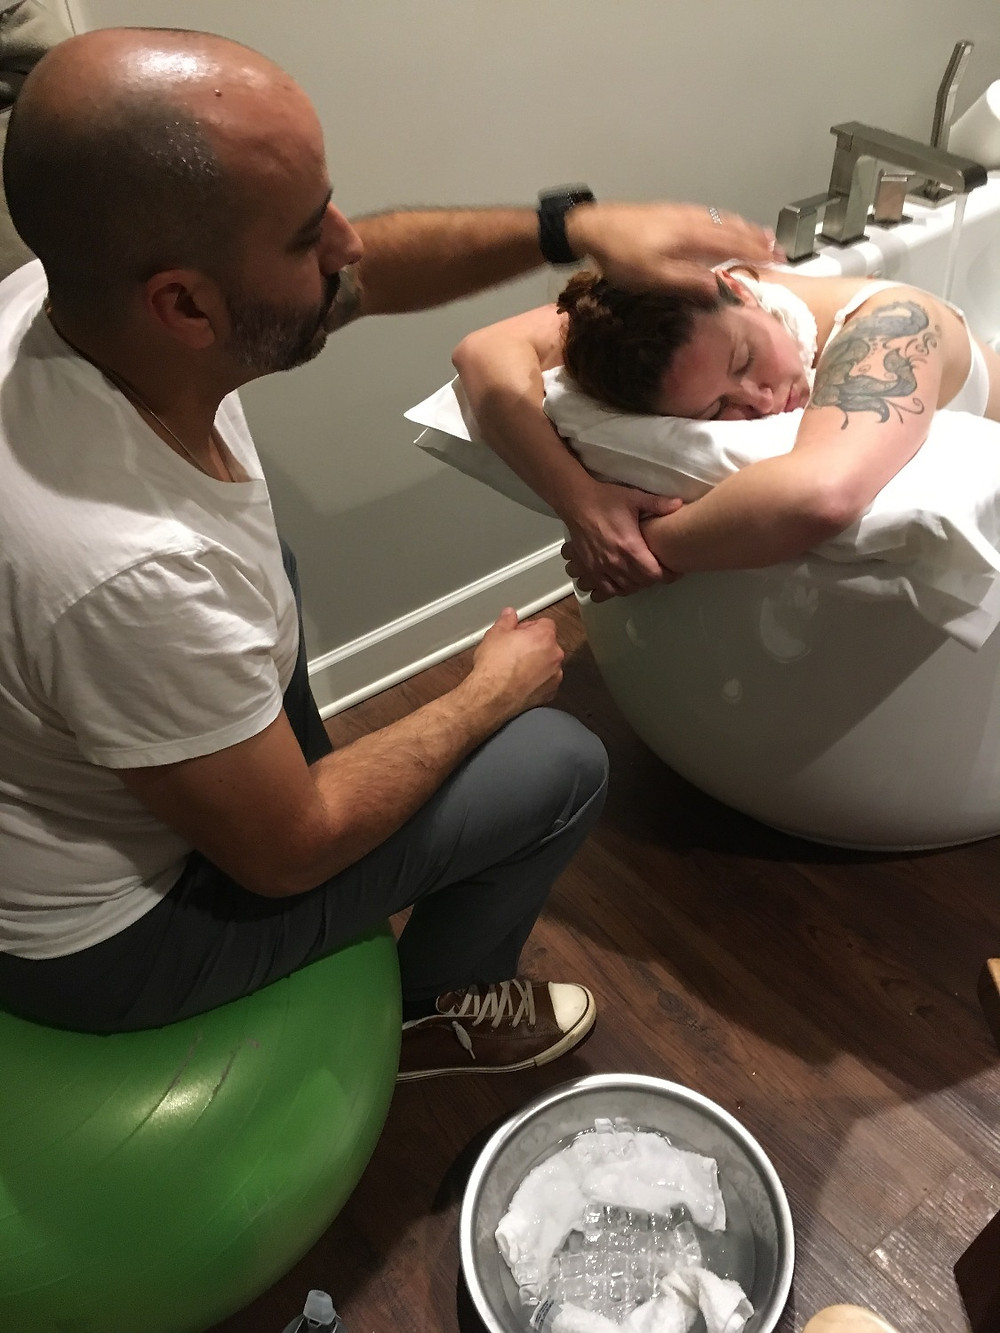 Husband Coaches wife | Encourages relaxation during labor